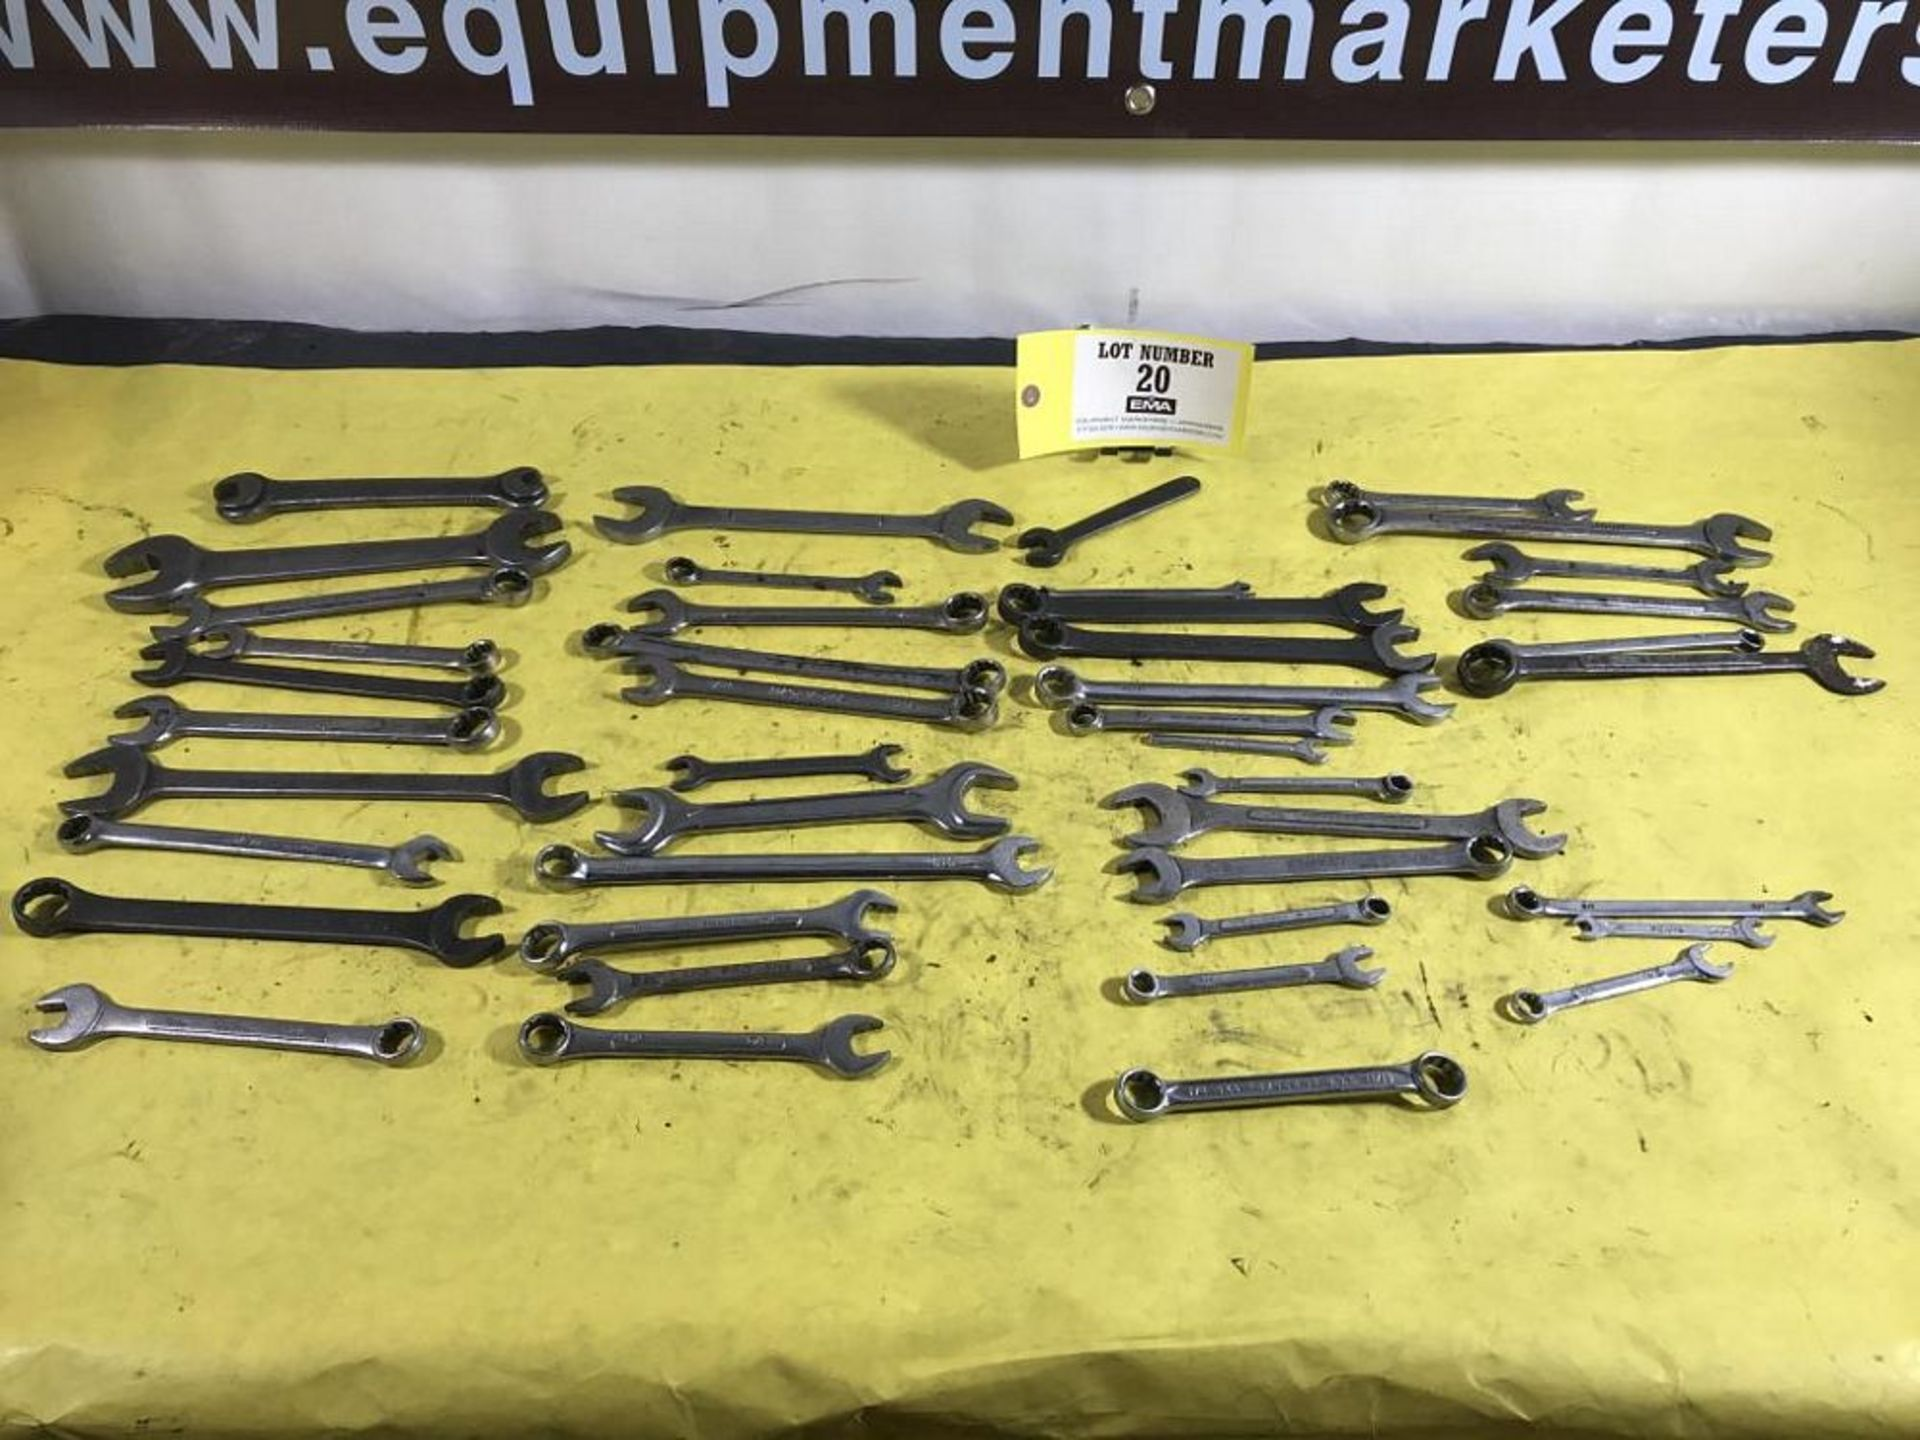 Lot 20 - Wrenches